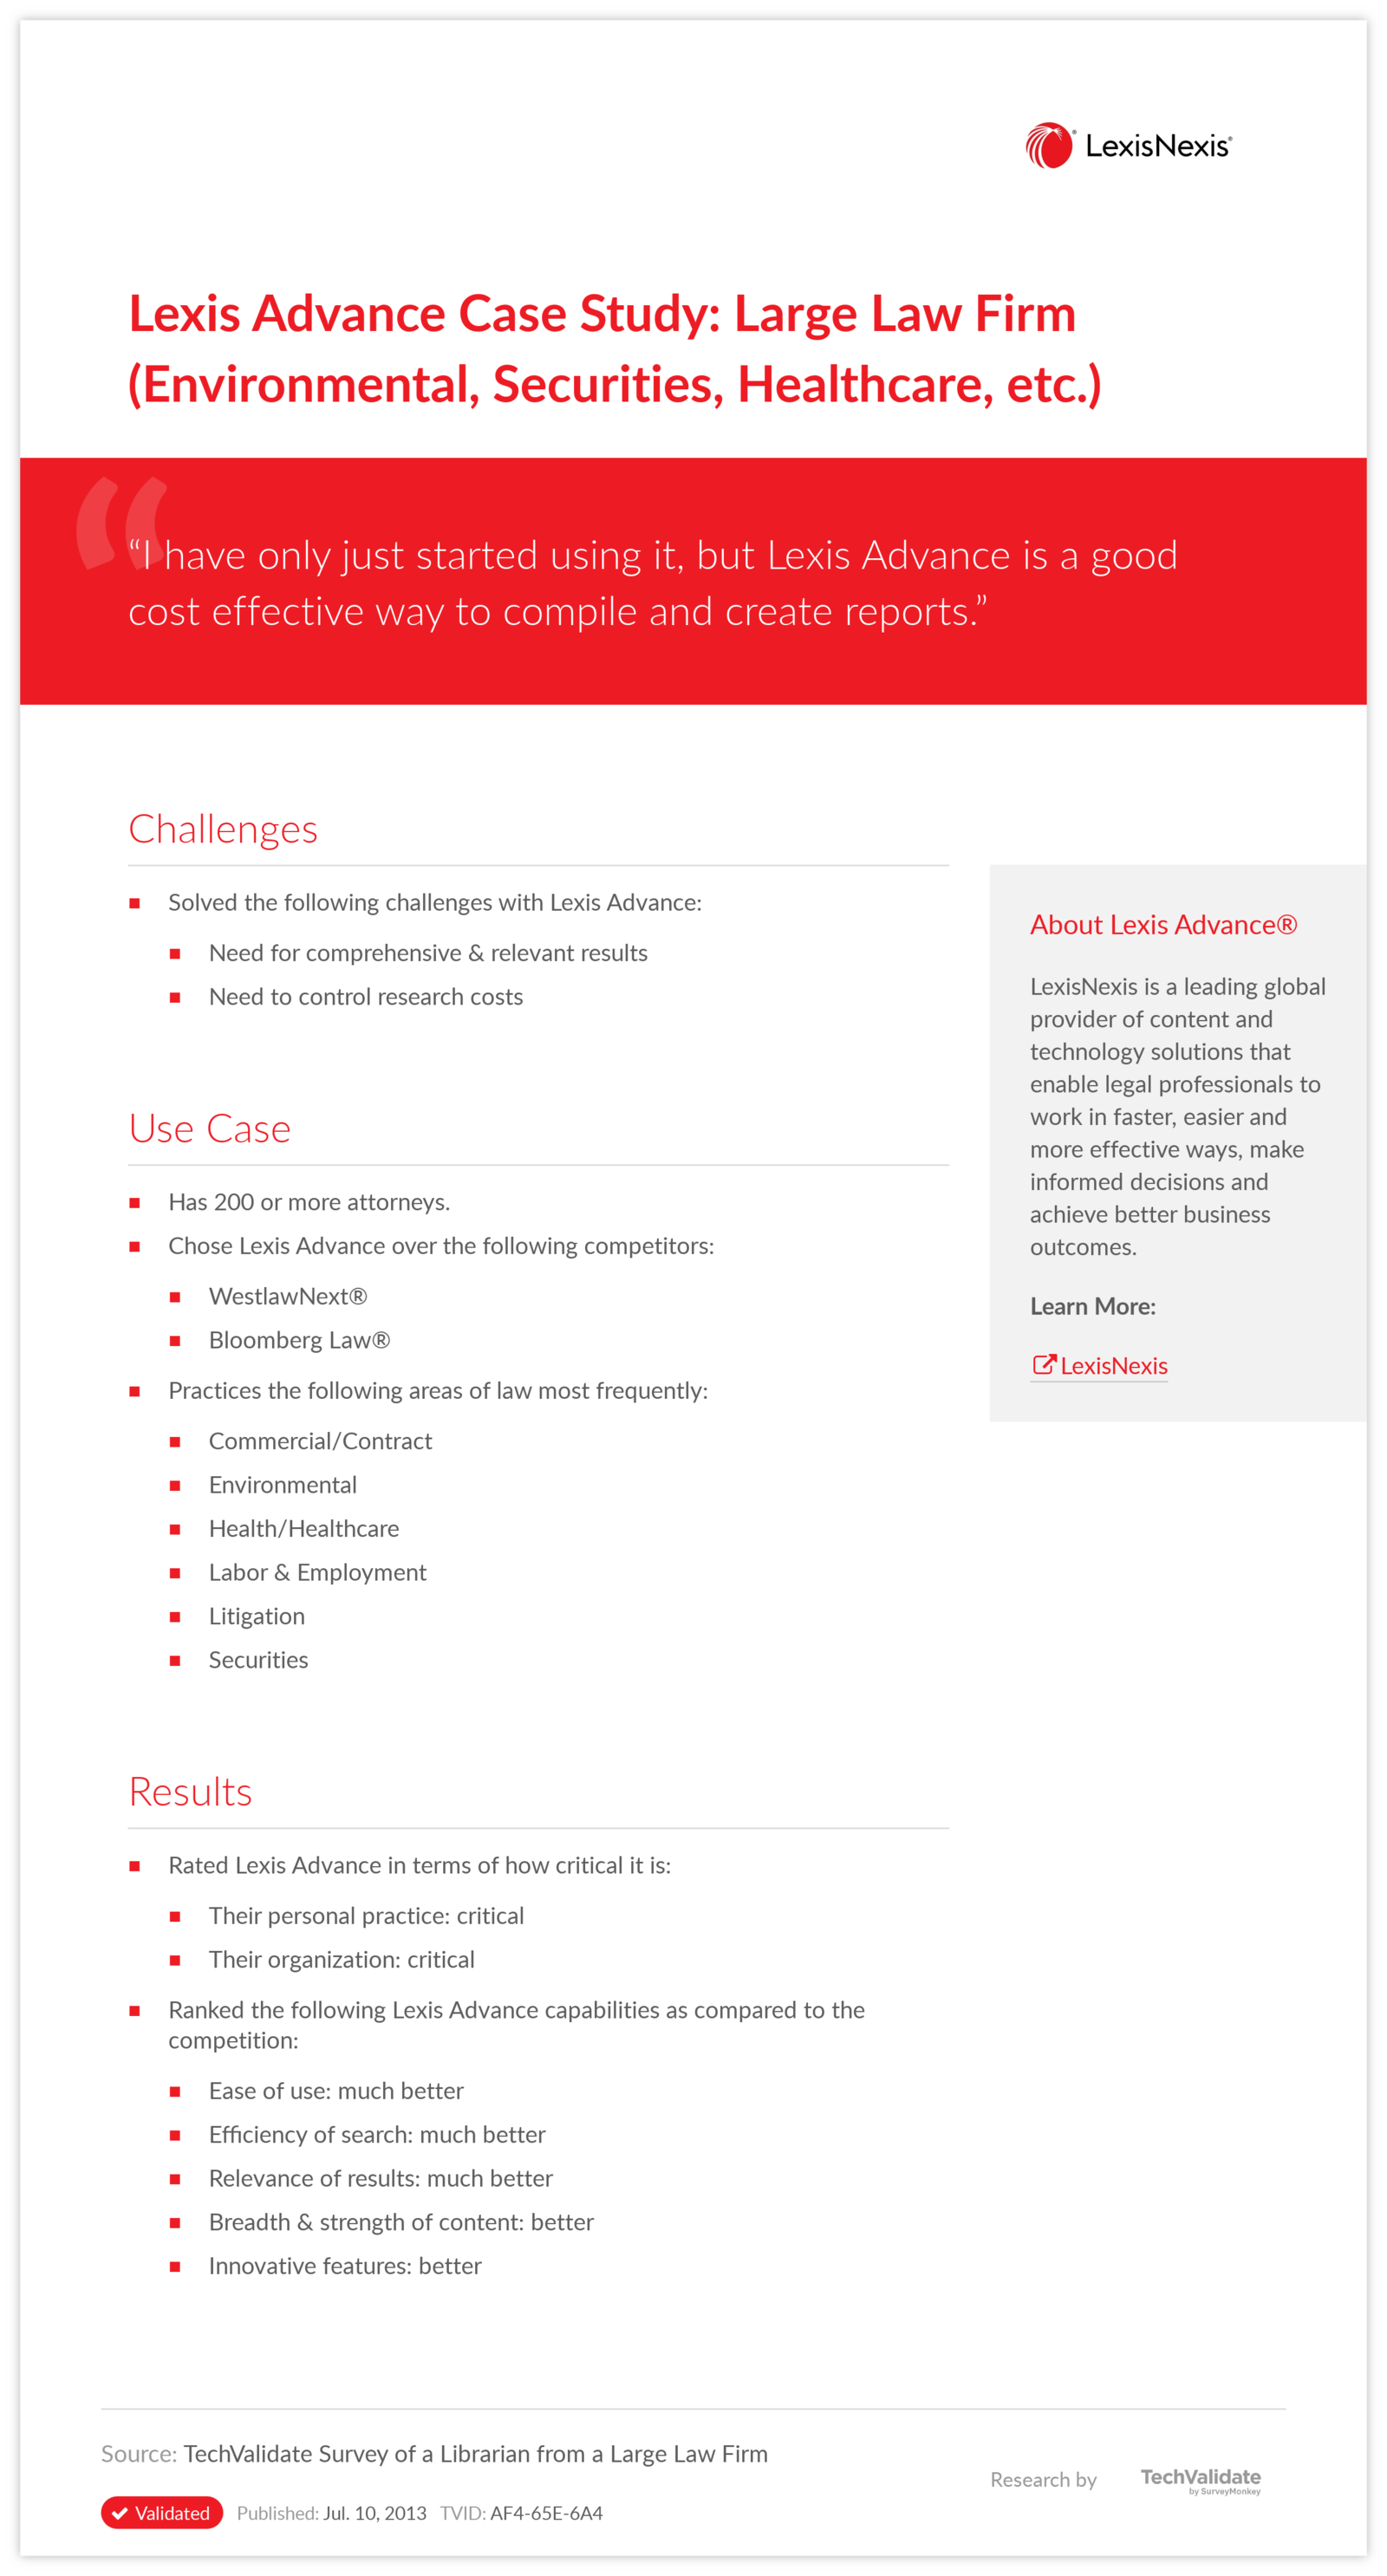 Lexis Advance Case Study: Large Law Firm (Environmental, Securities, Healthcare, etc.)